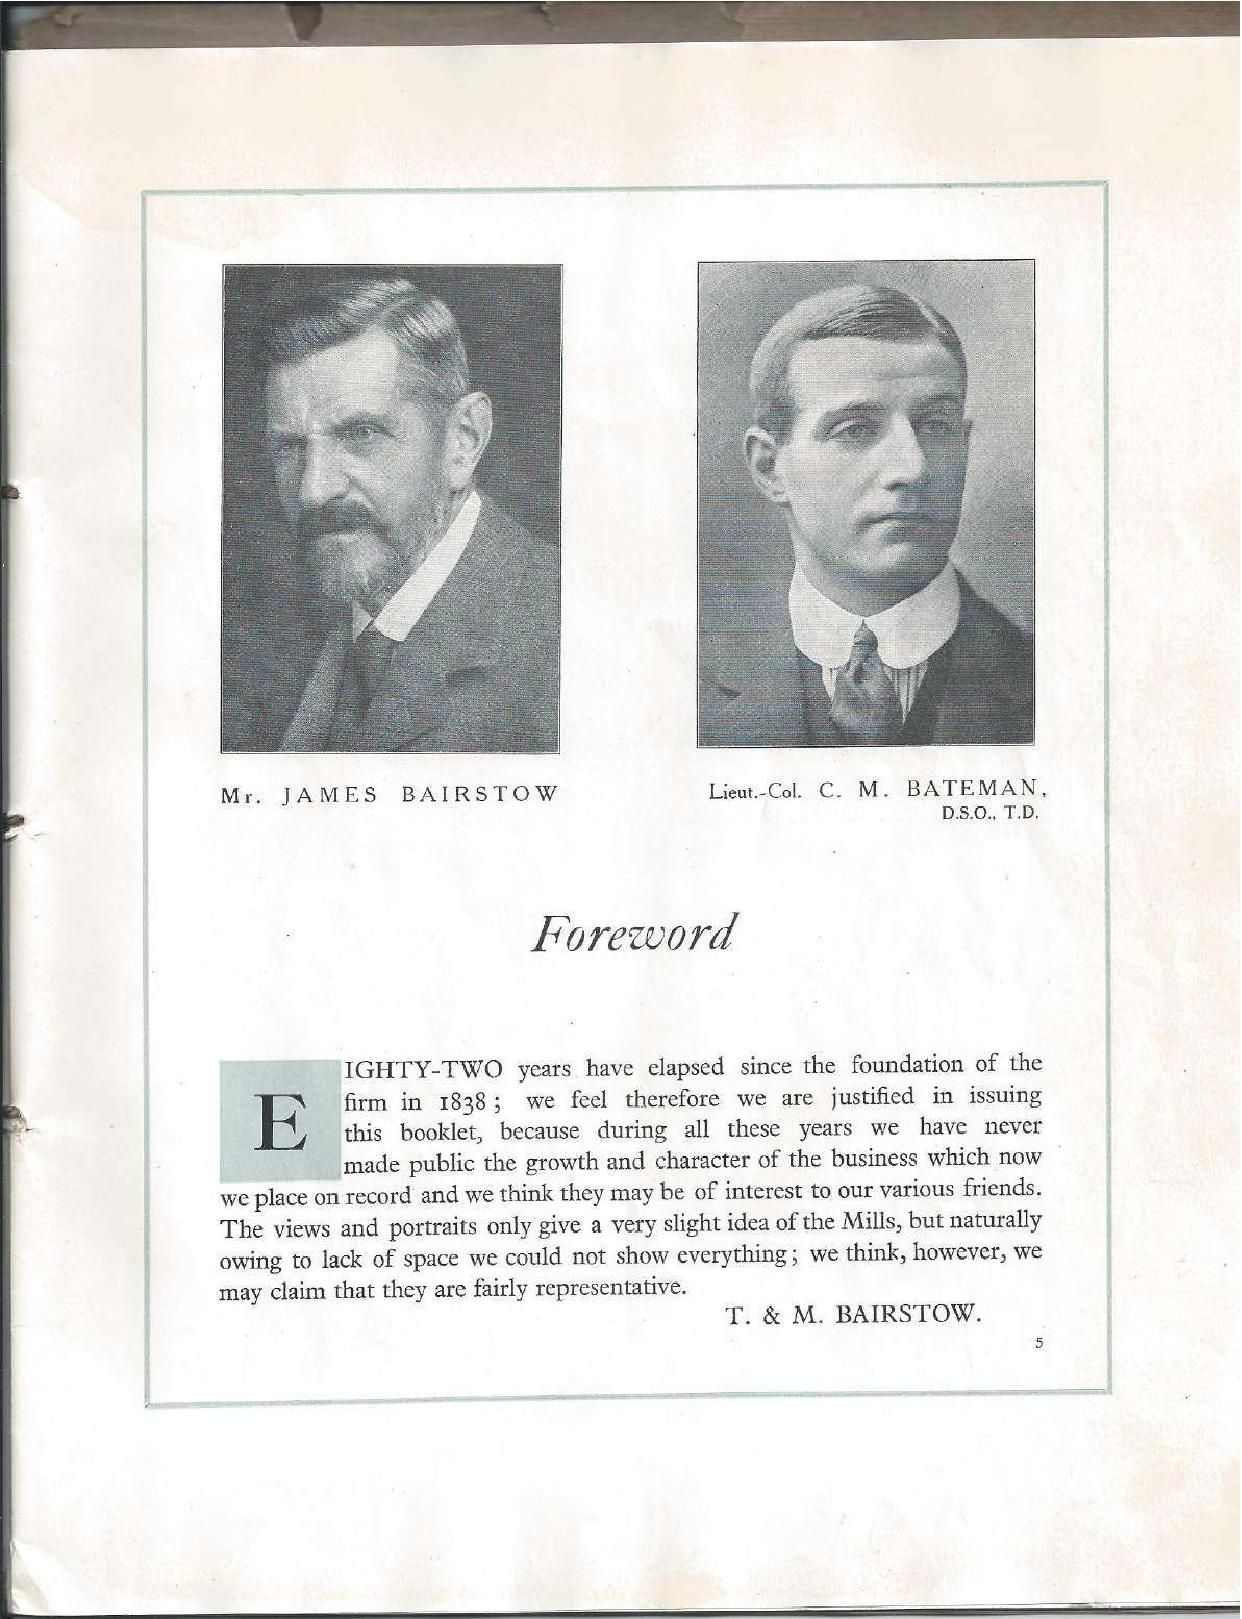 1920TMBairstowBooklet_compressed-page-004